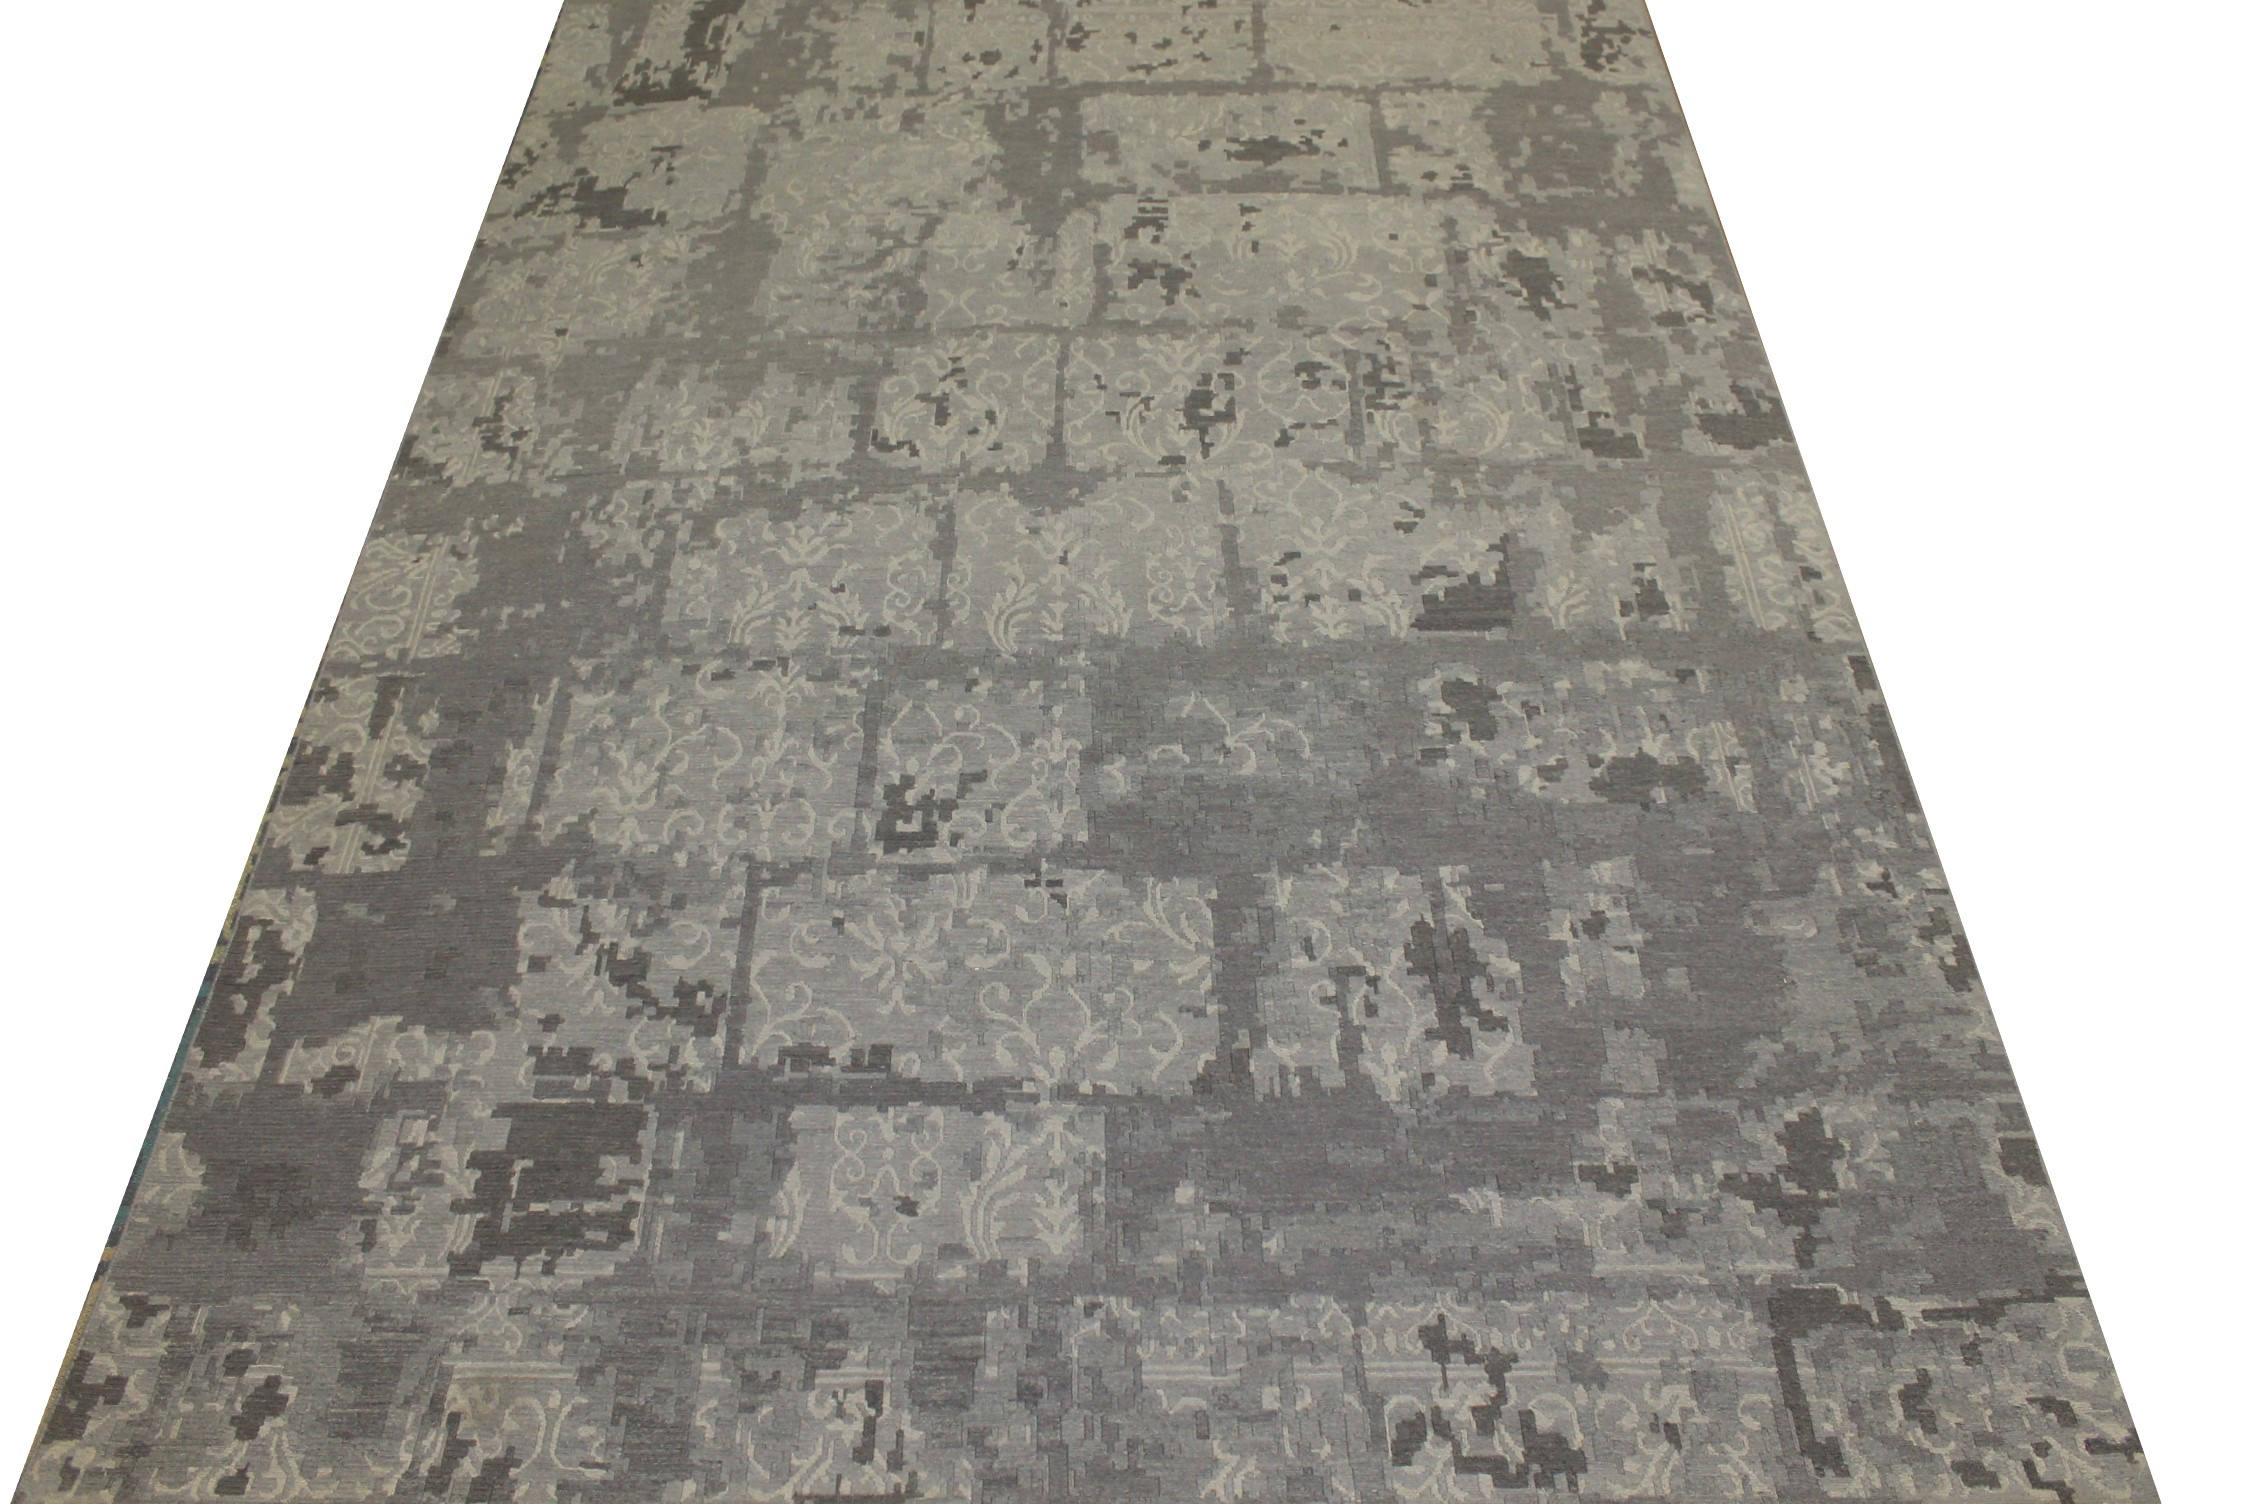 9x12 Contemporary Hand Knotted Wool Area Rug - MR16591